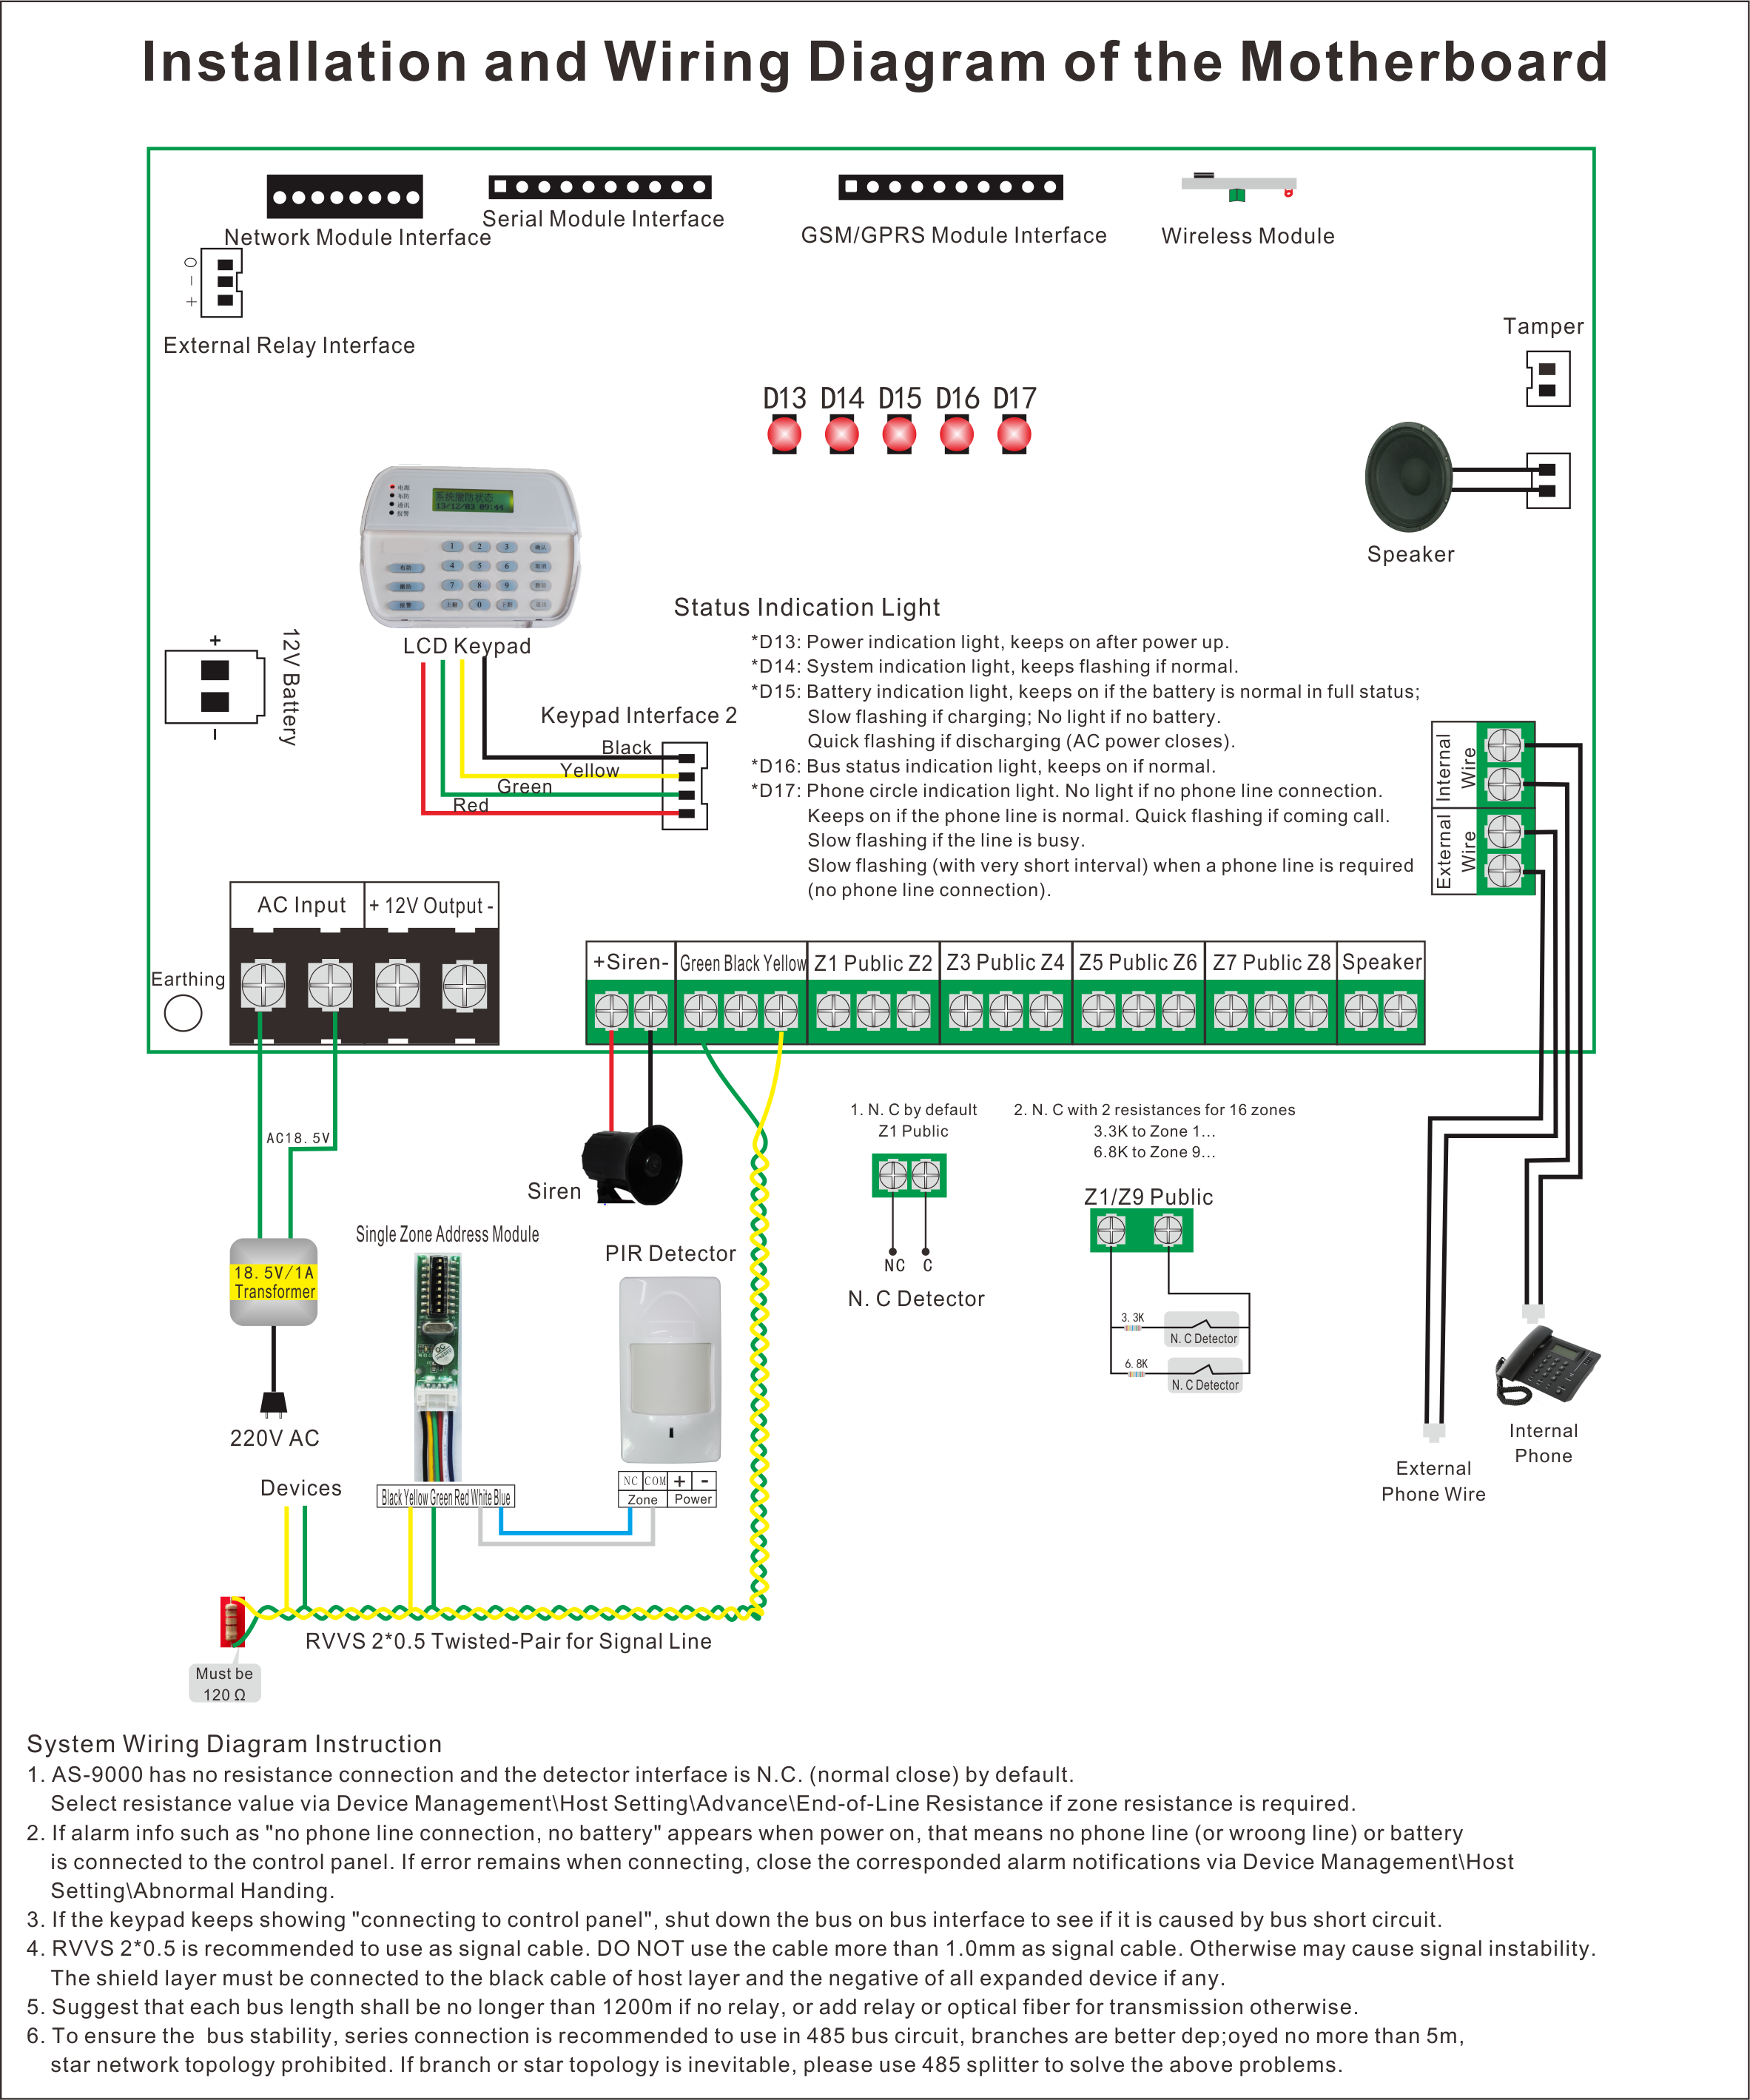 As-9000 Series Alarm Control Host